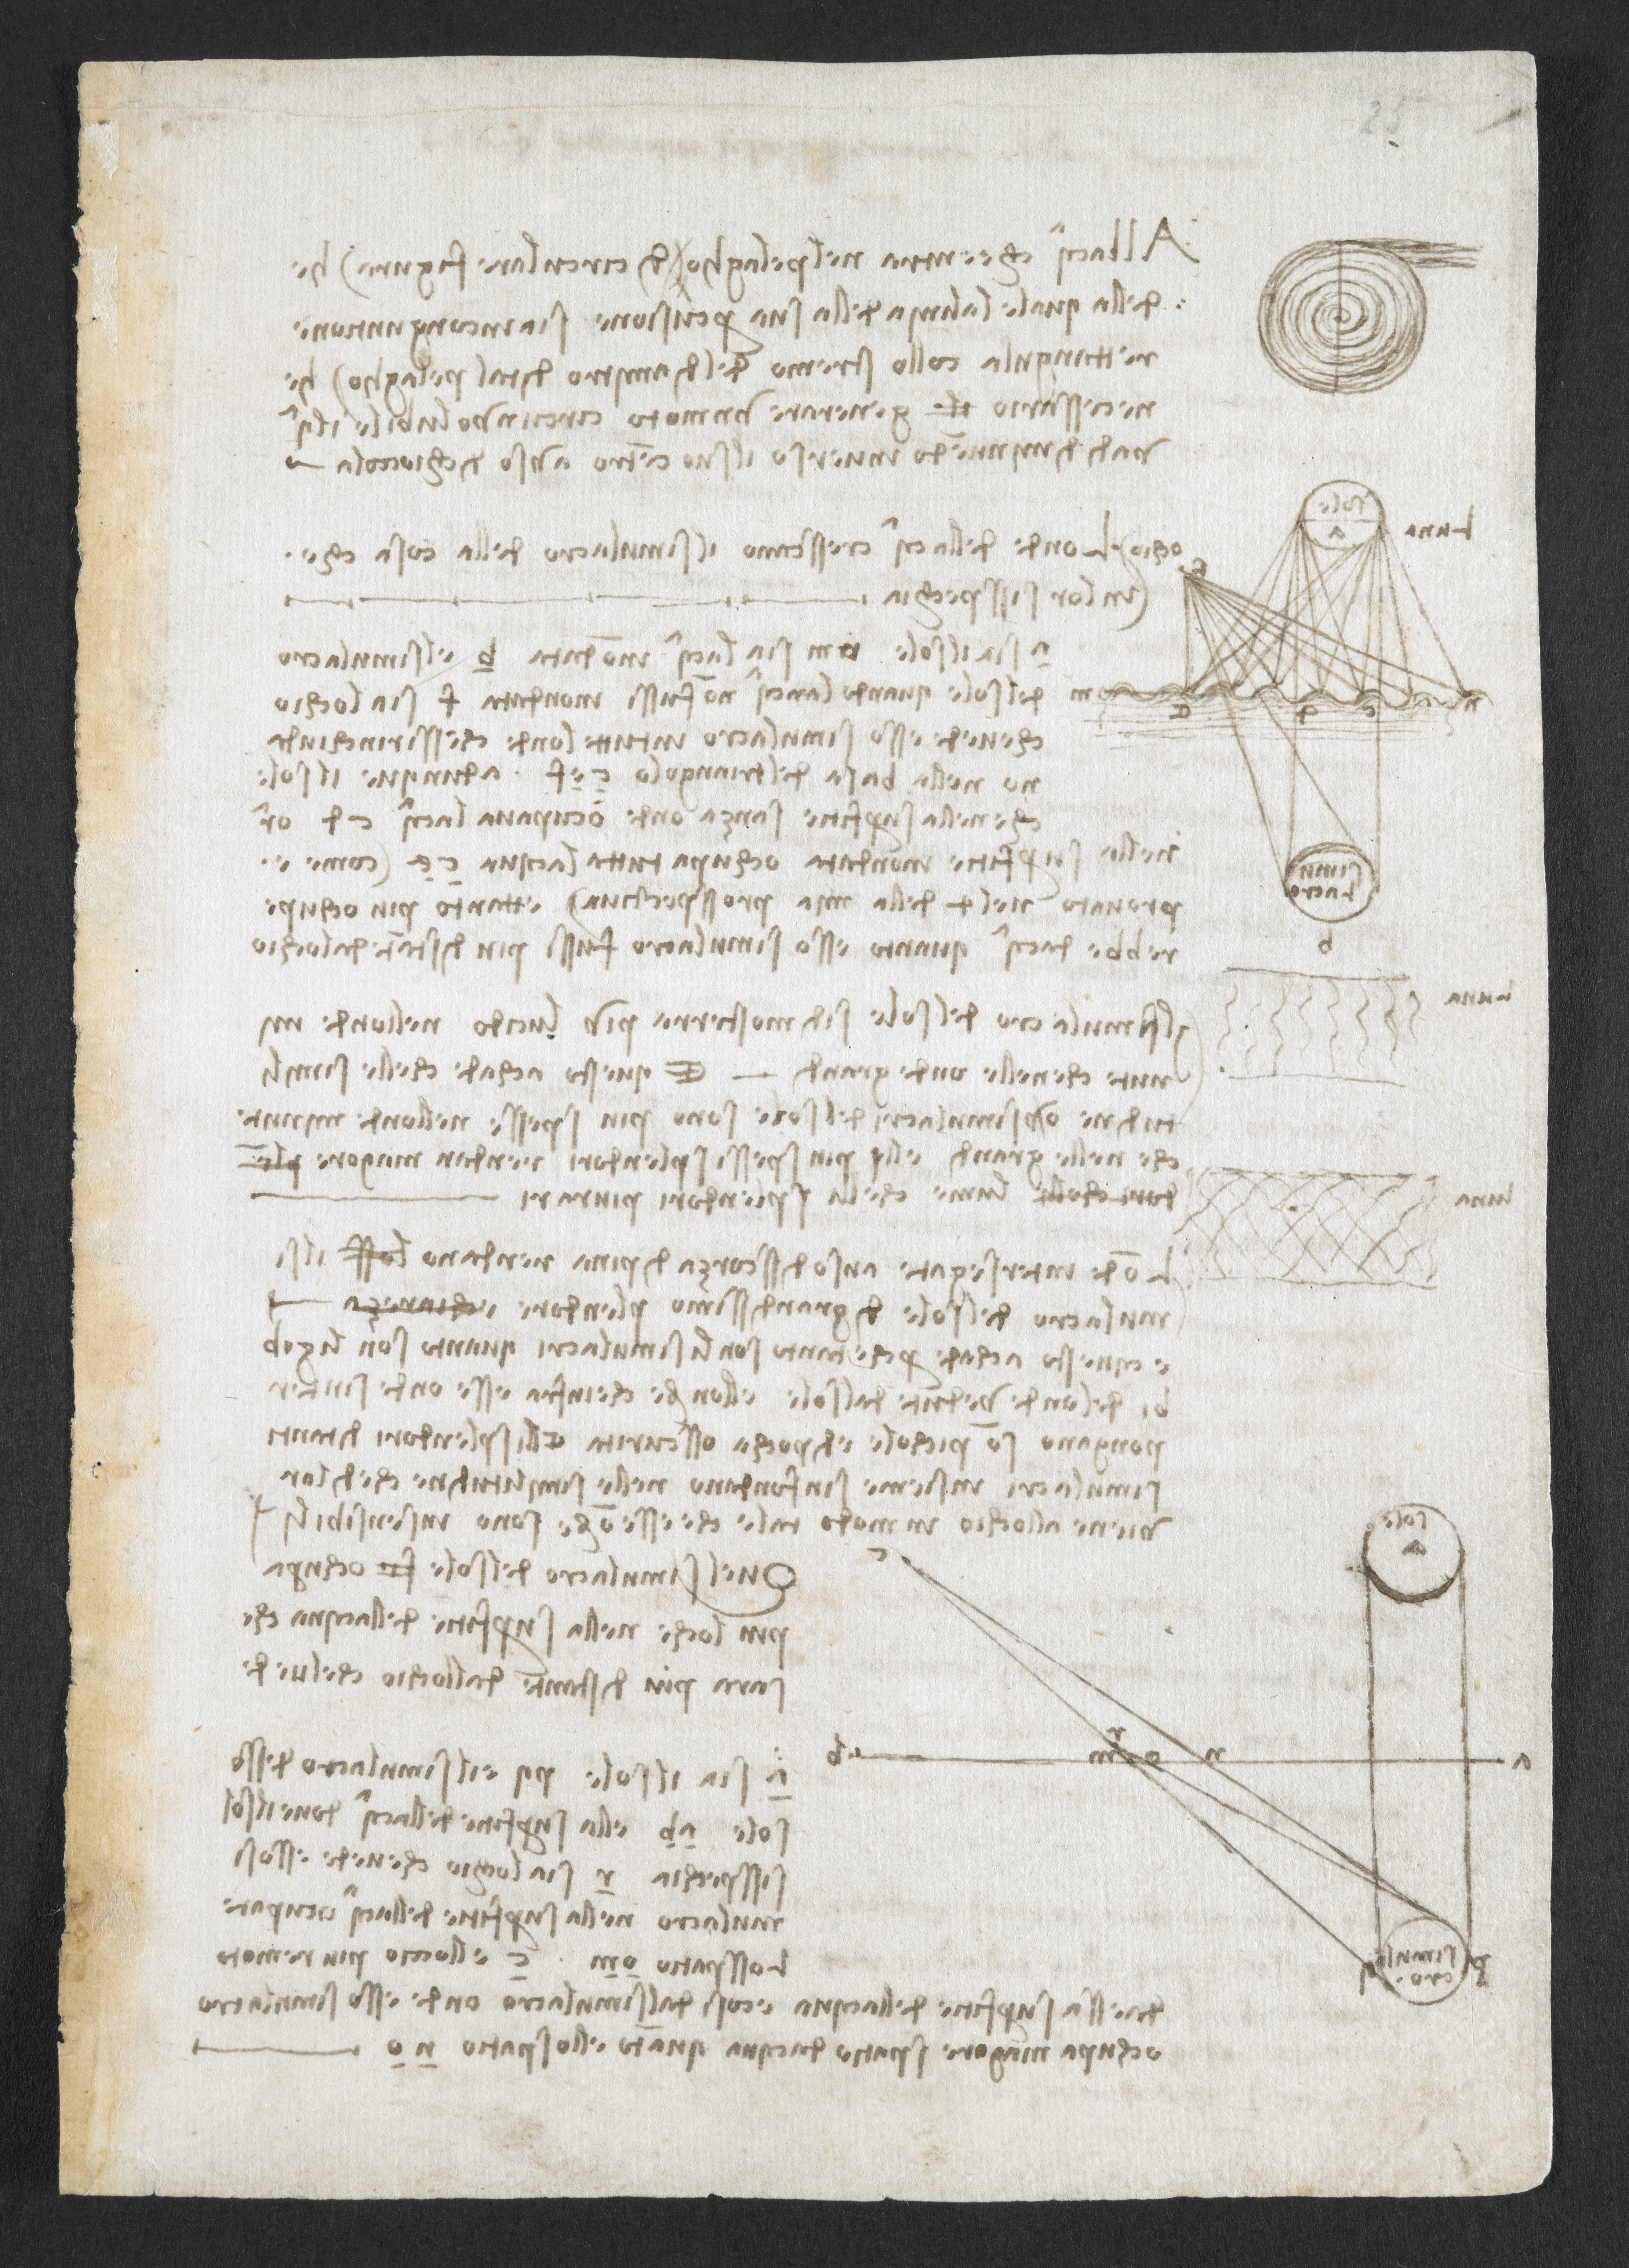 Observations on the course of the River Arno British Library Arundel MS 263 f 149r c British Library Board